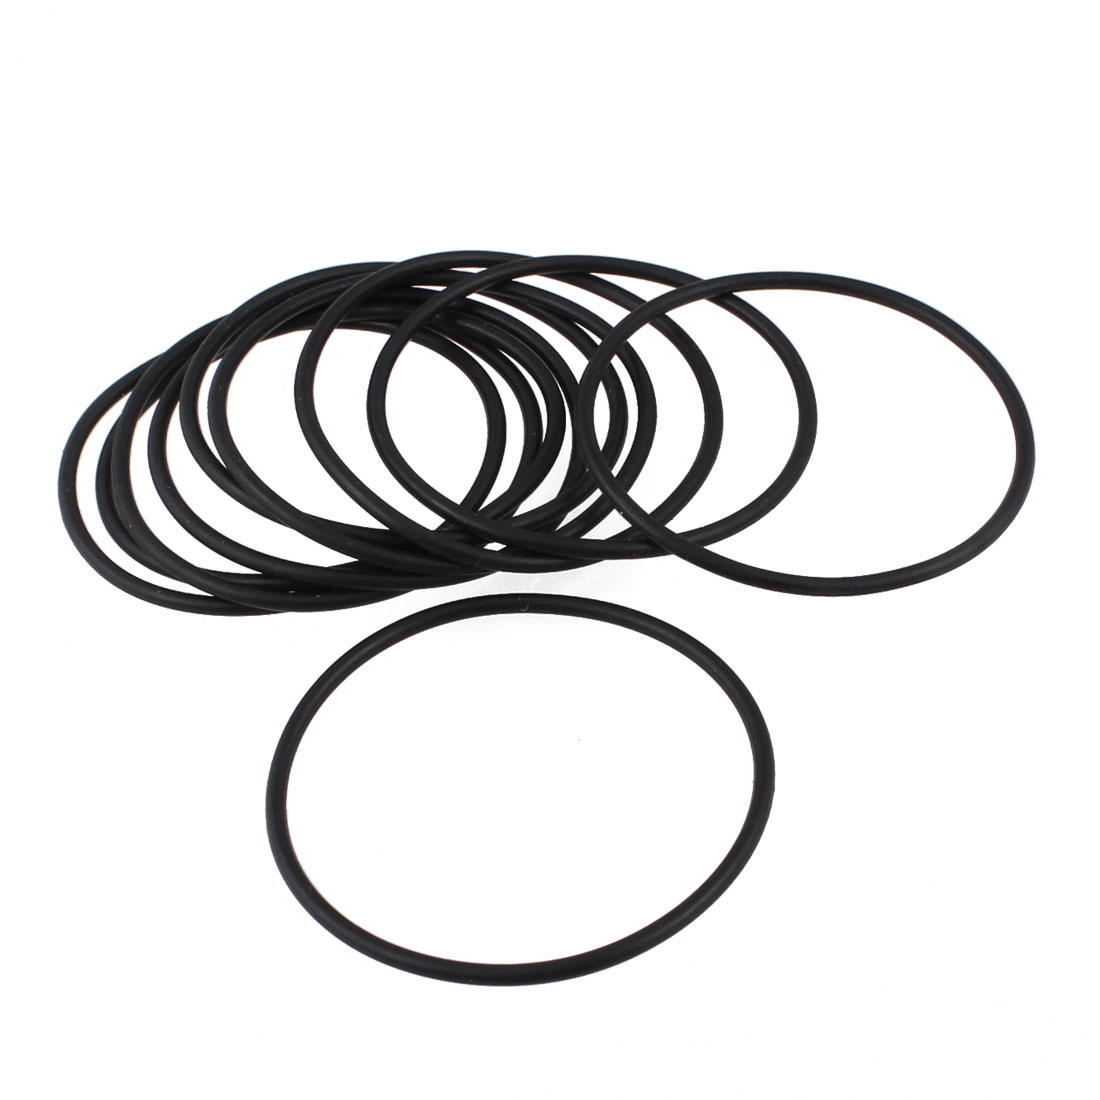 10 Pcs Oil Seal O Rings Black Nitrile Rubber 48mm OD 2mm Thickness